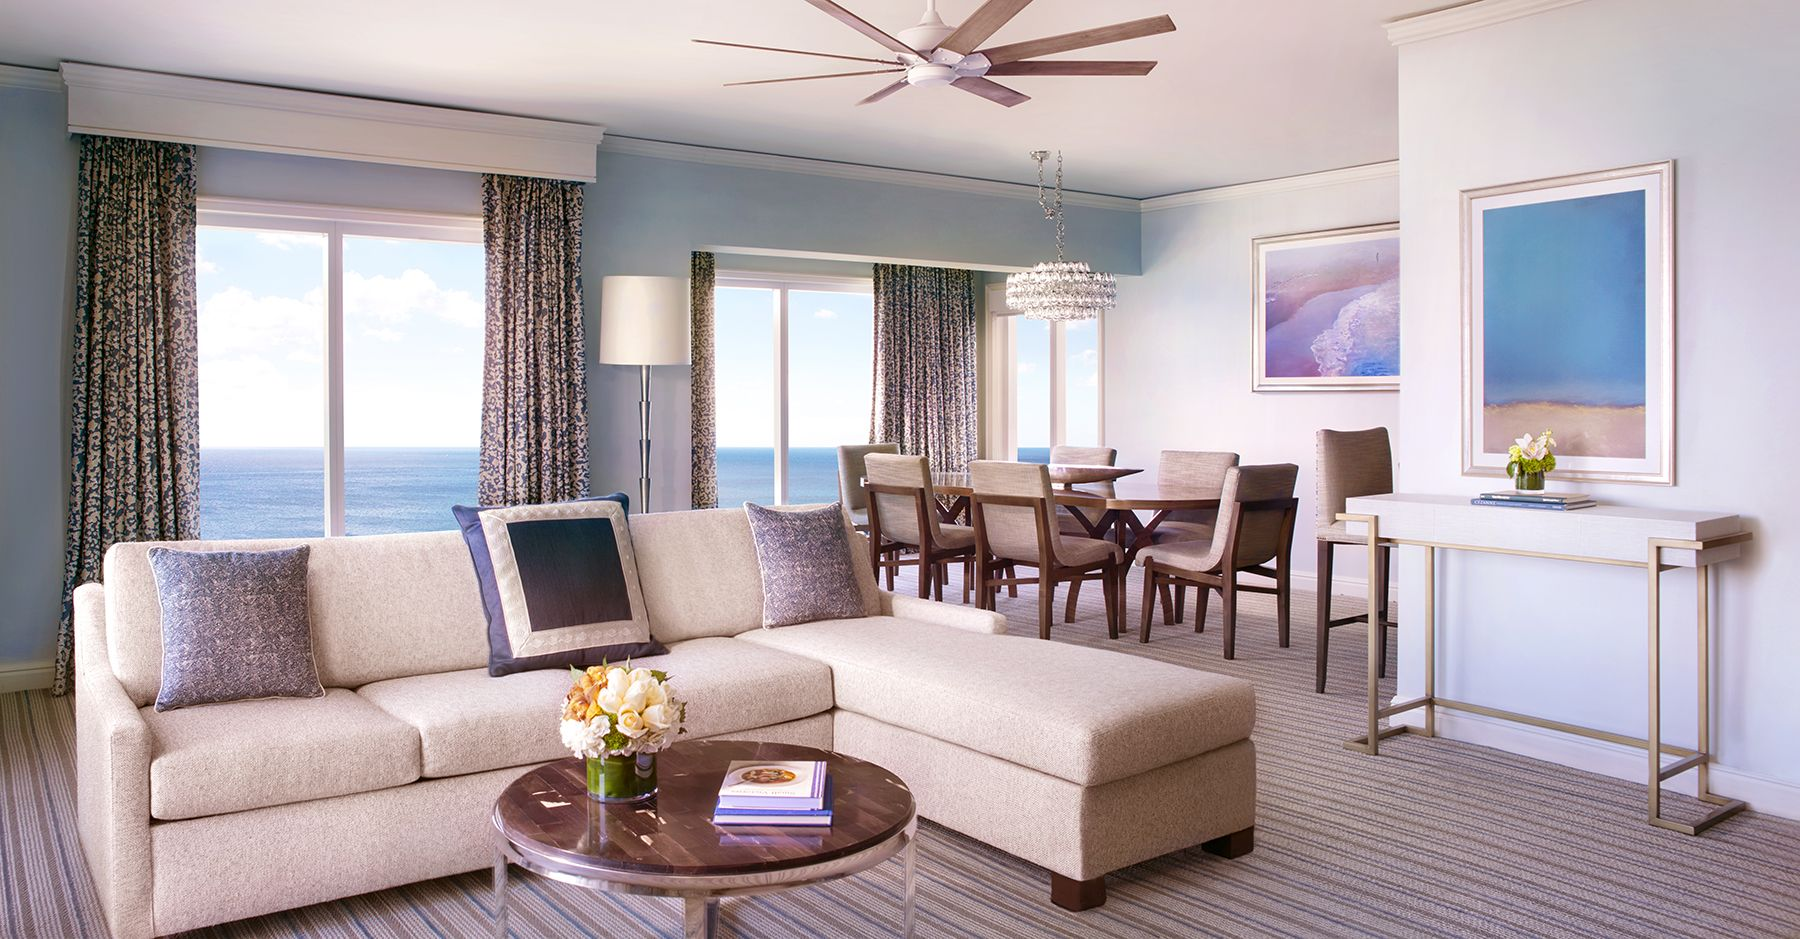 Tour the Luxurious, New, Updated Ritz-Carlton on Key Biscayne